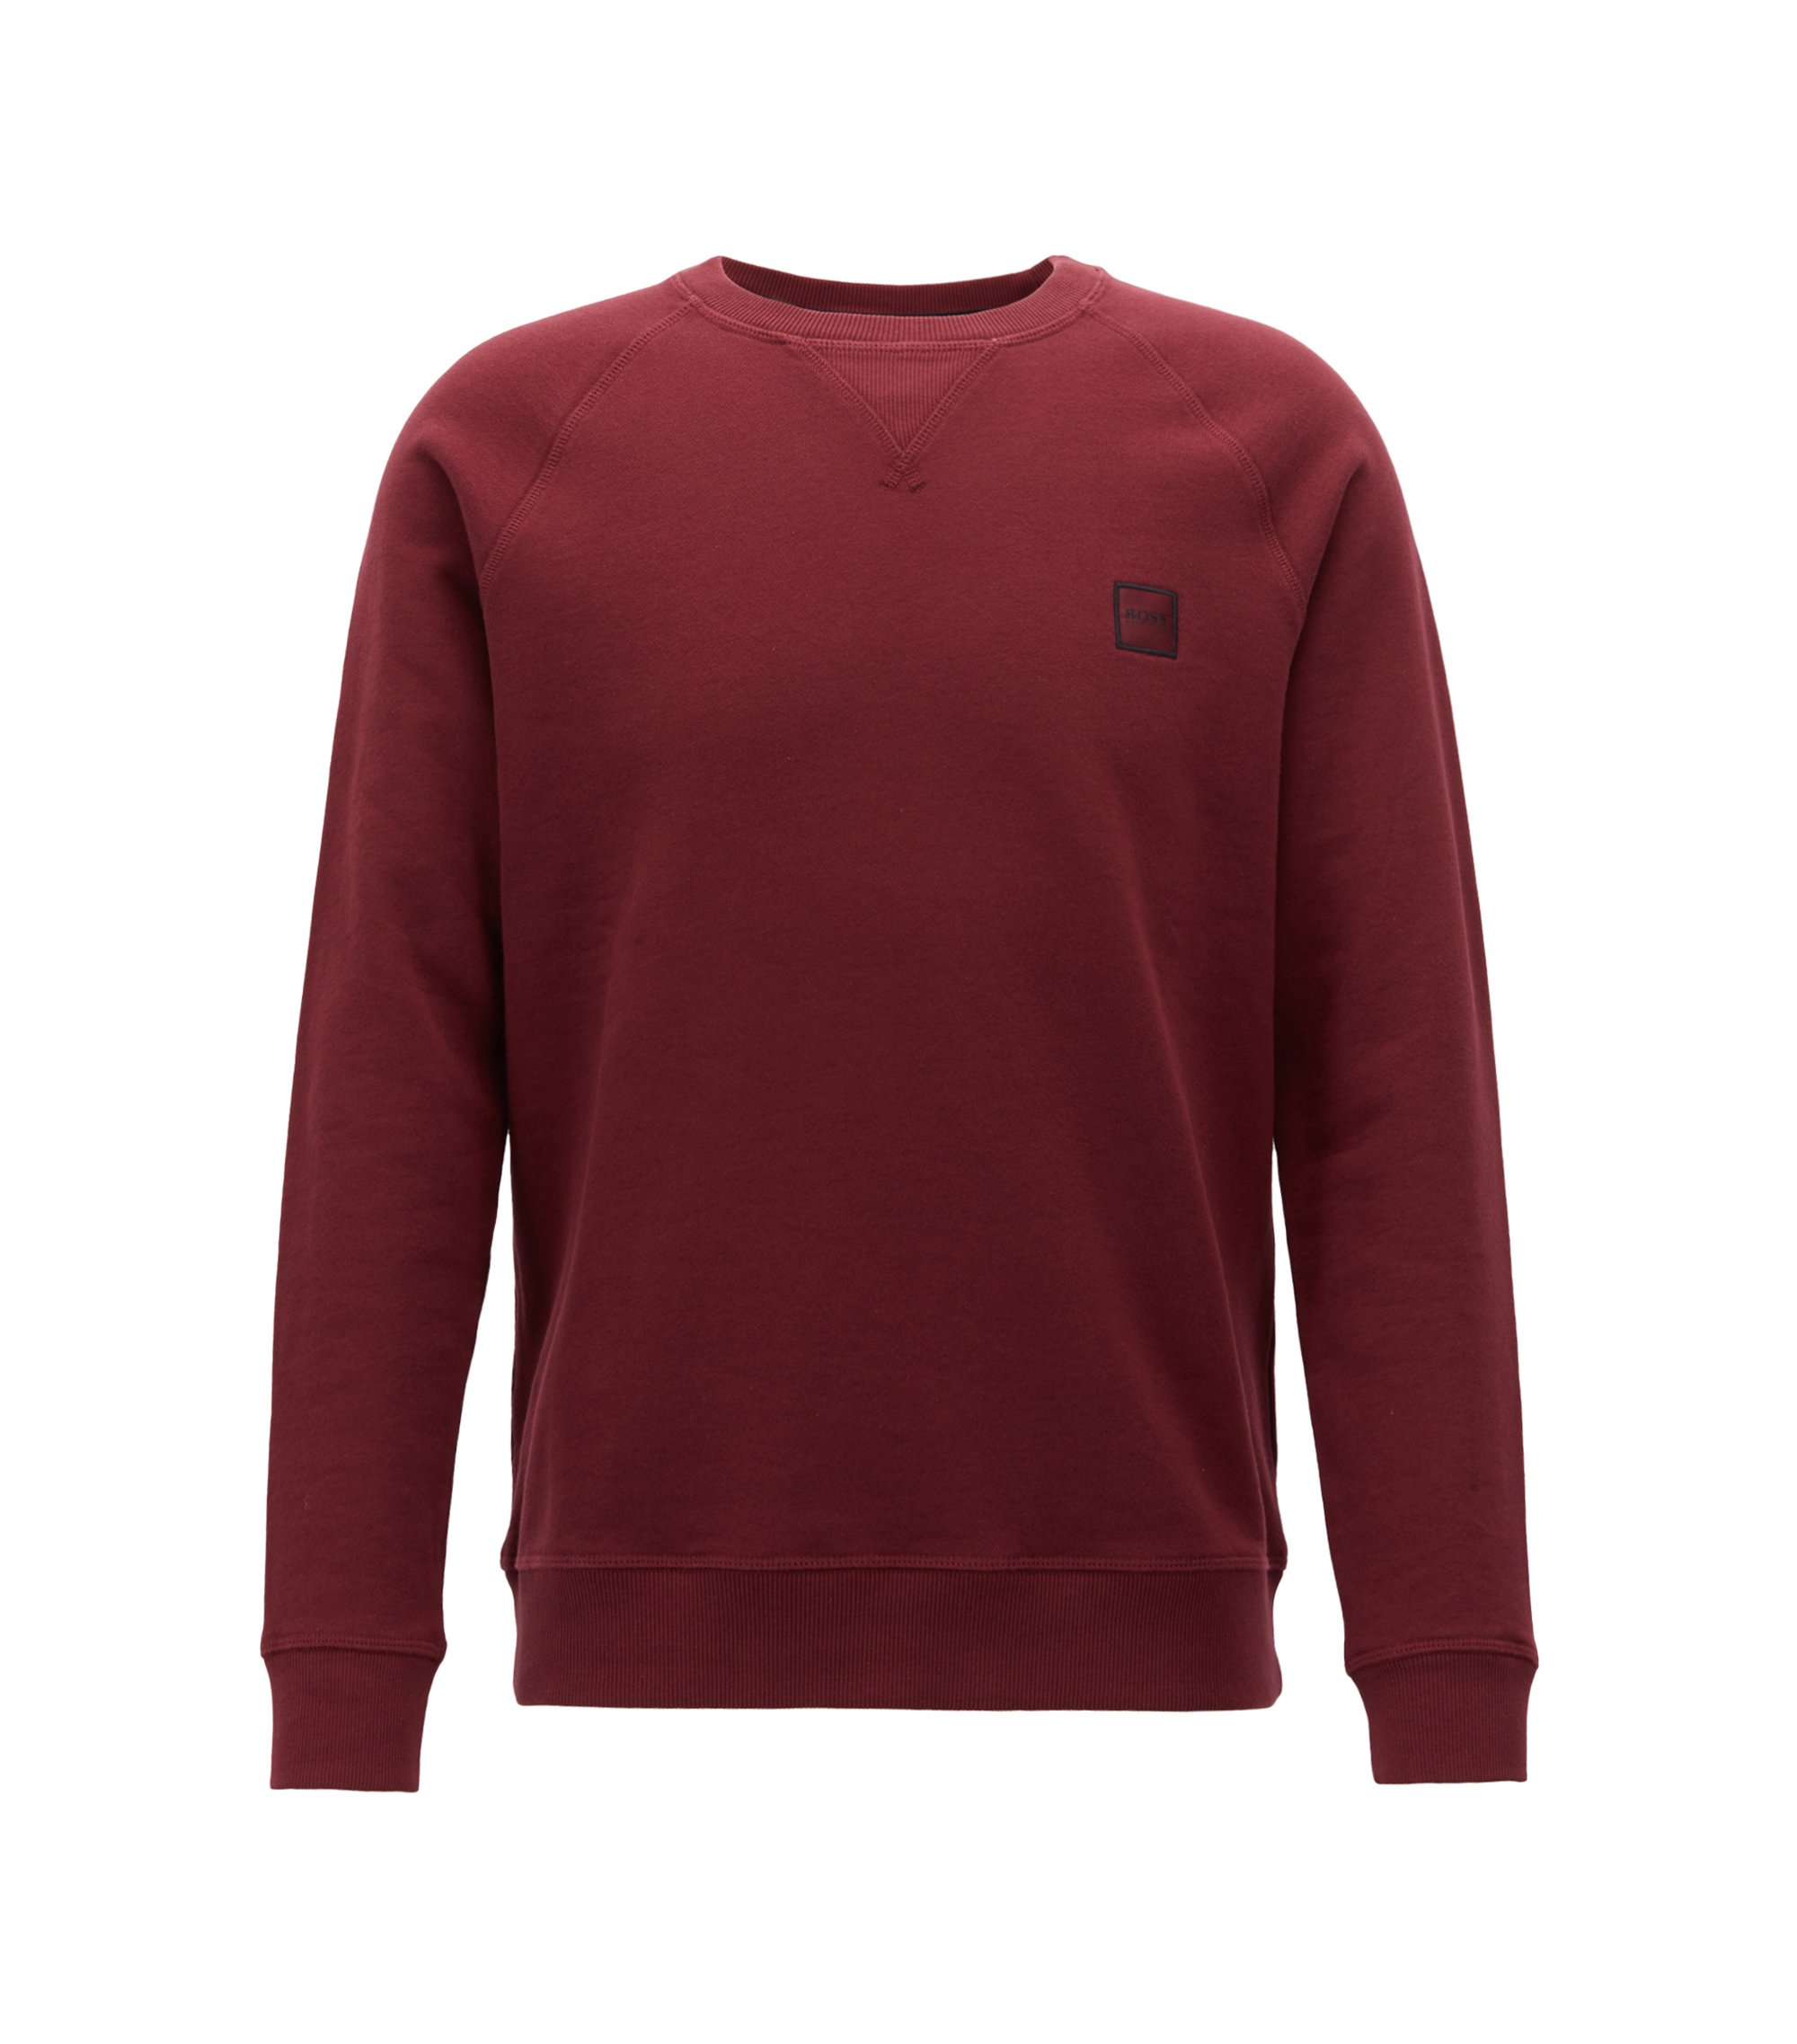 French-terry sweatshirt with logo patch, Dark Red